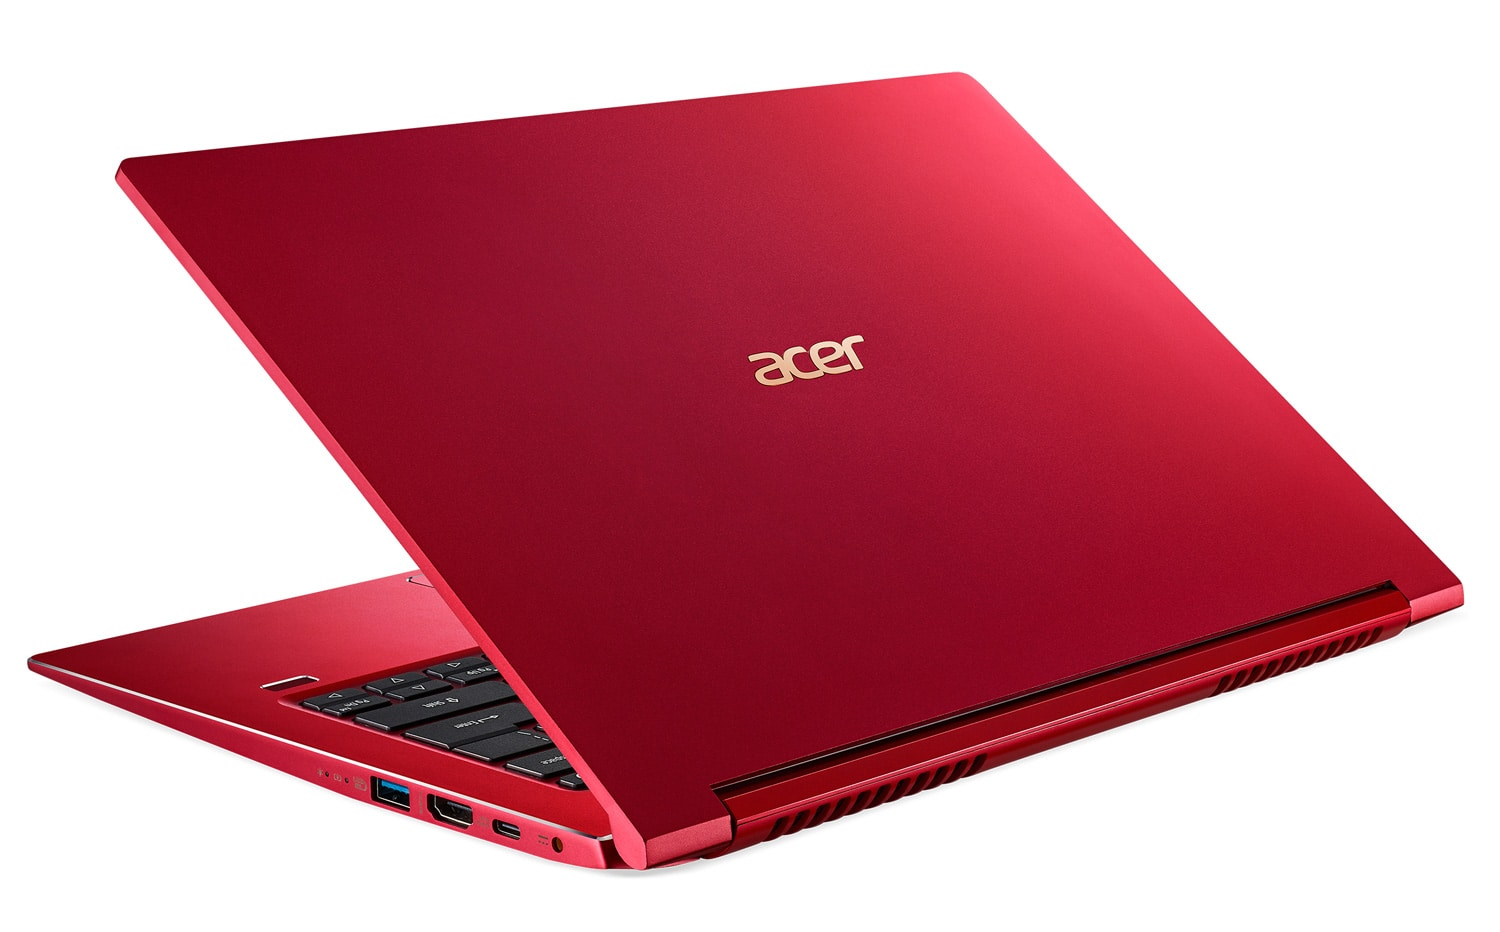 "Acer Swift SF314-55-53Z7, PC portable rouge 14"" fin et léger (699€)"